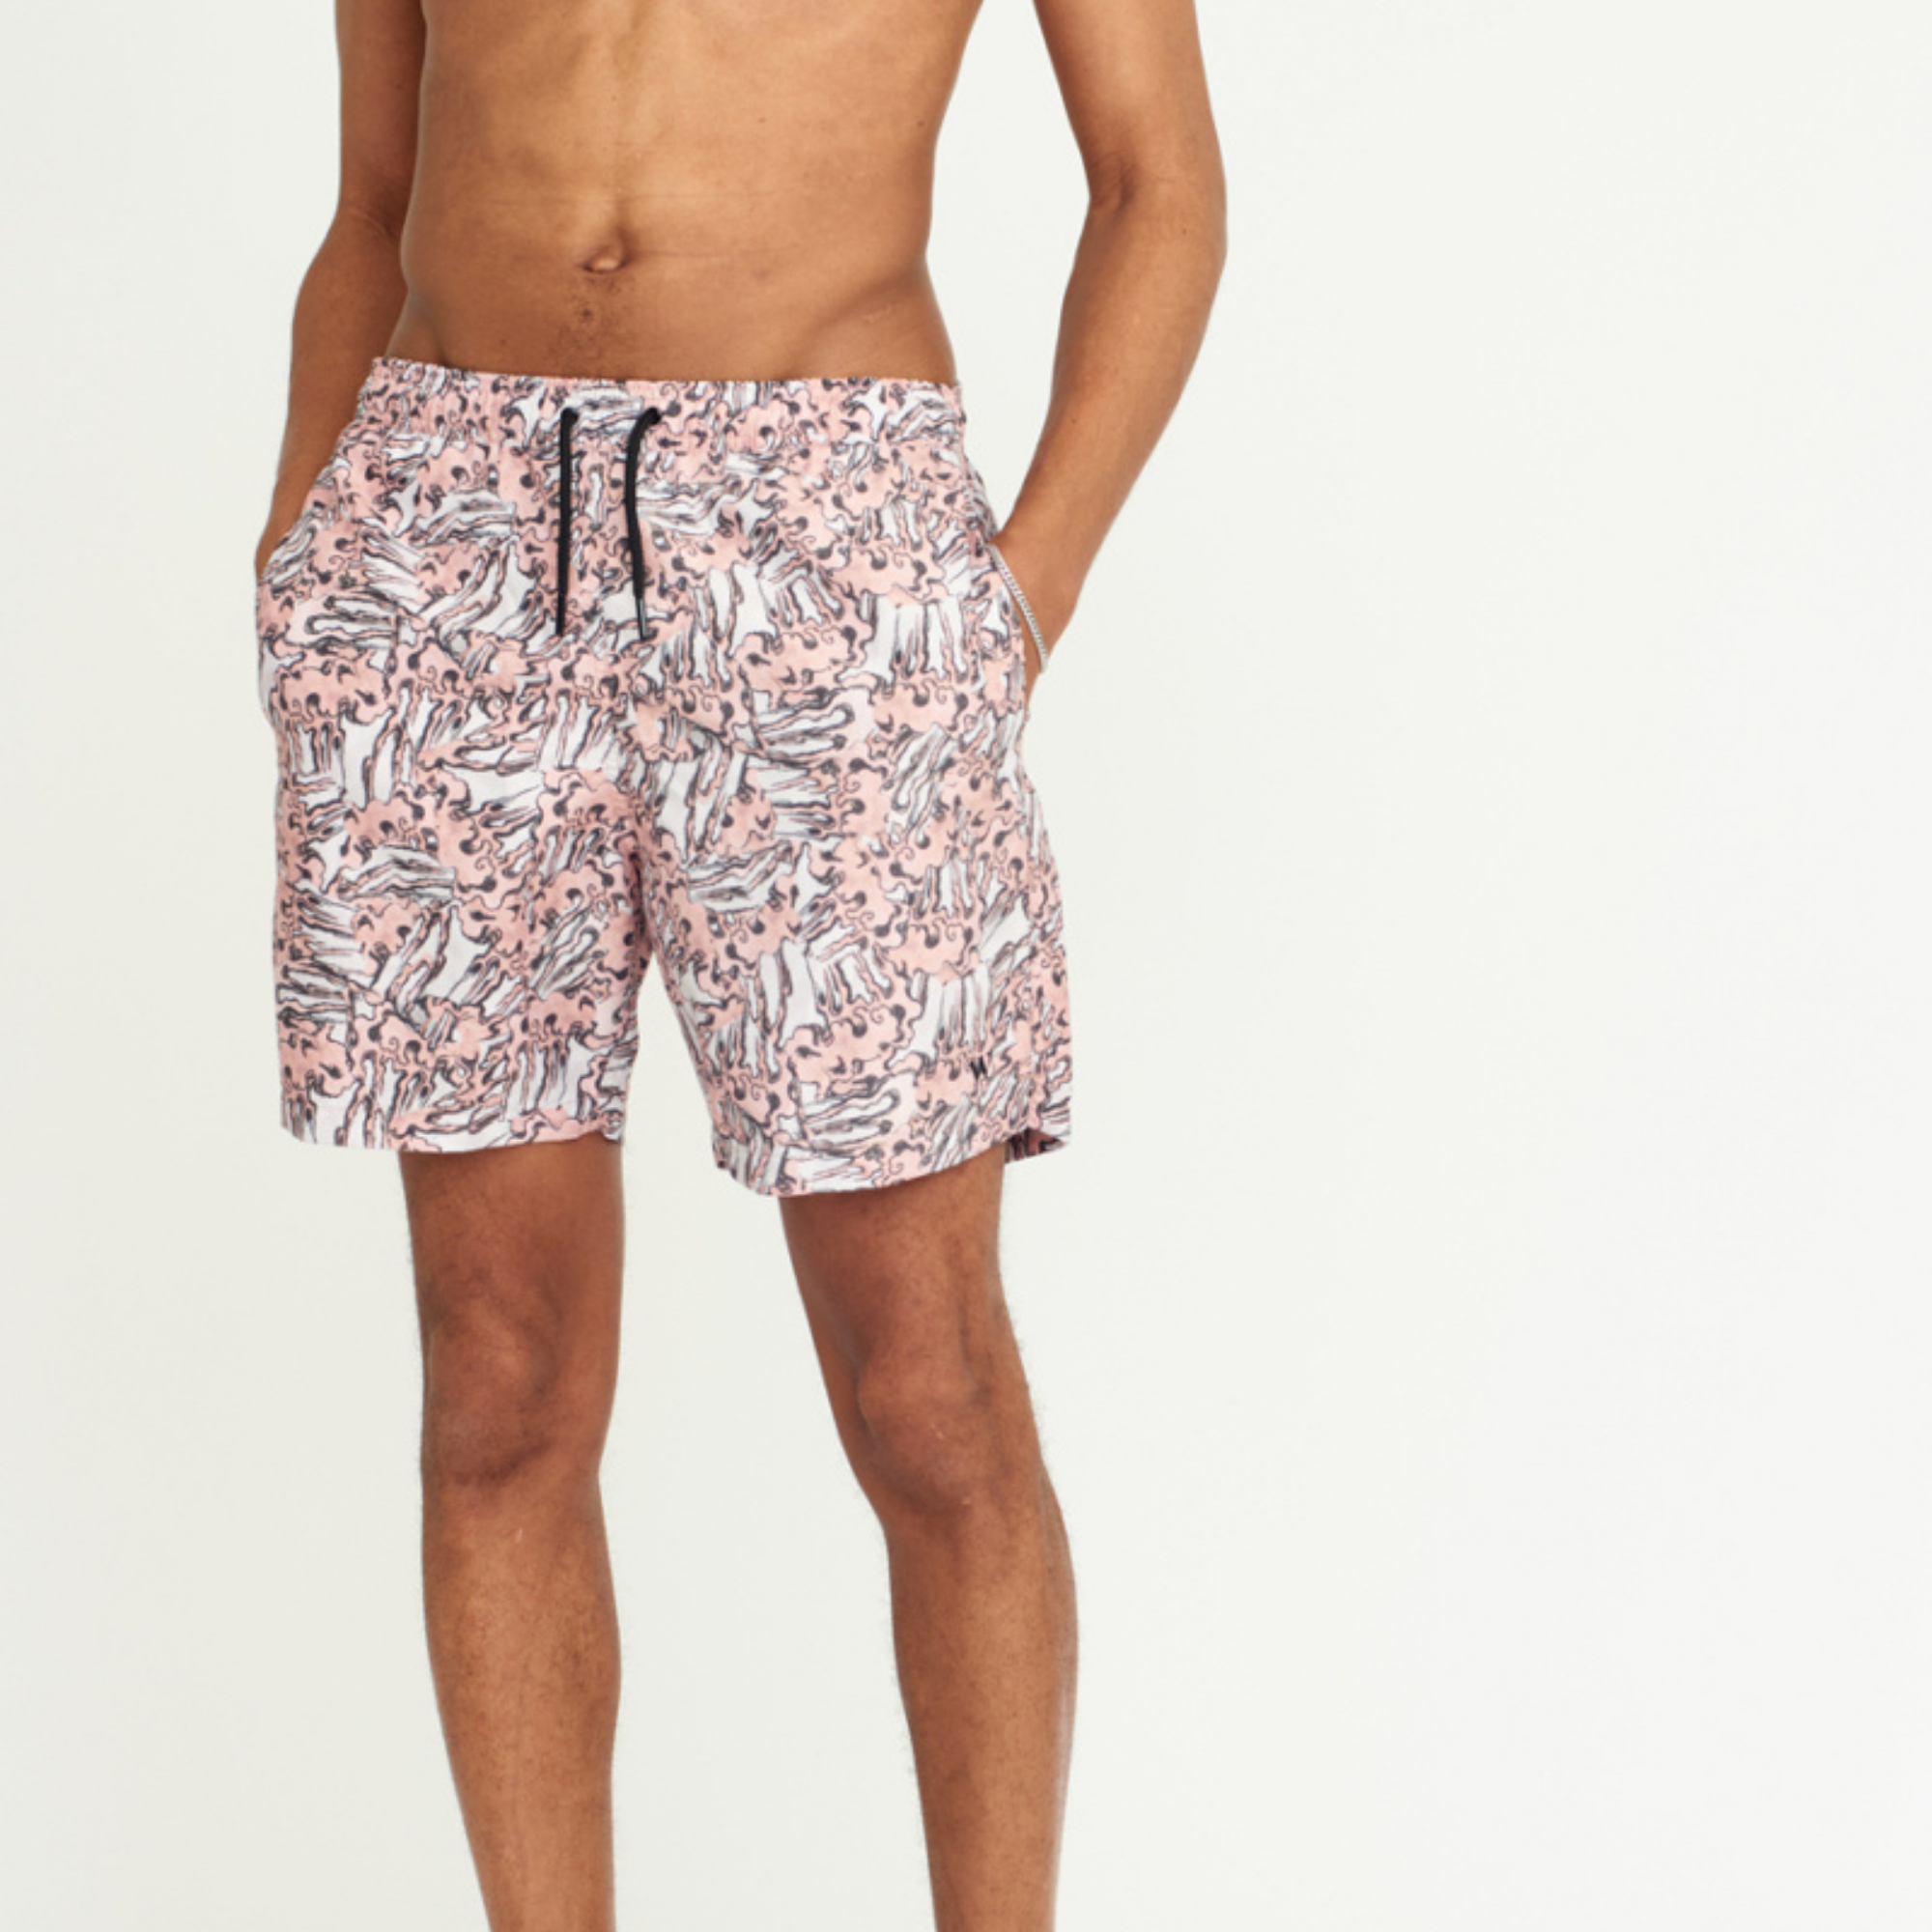 Wax Noden Swimshorts Wave Print